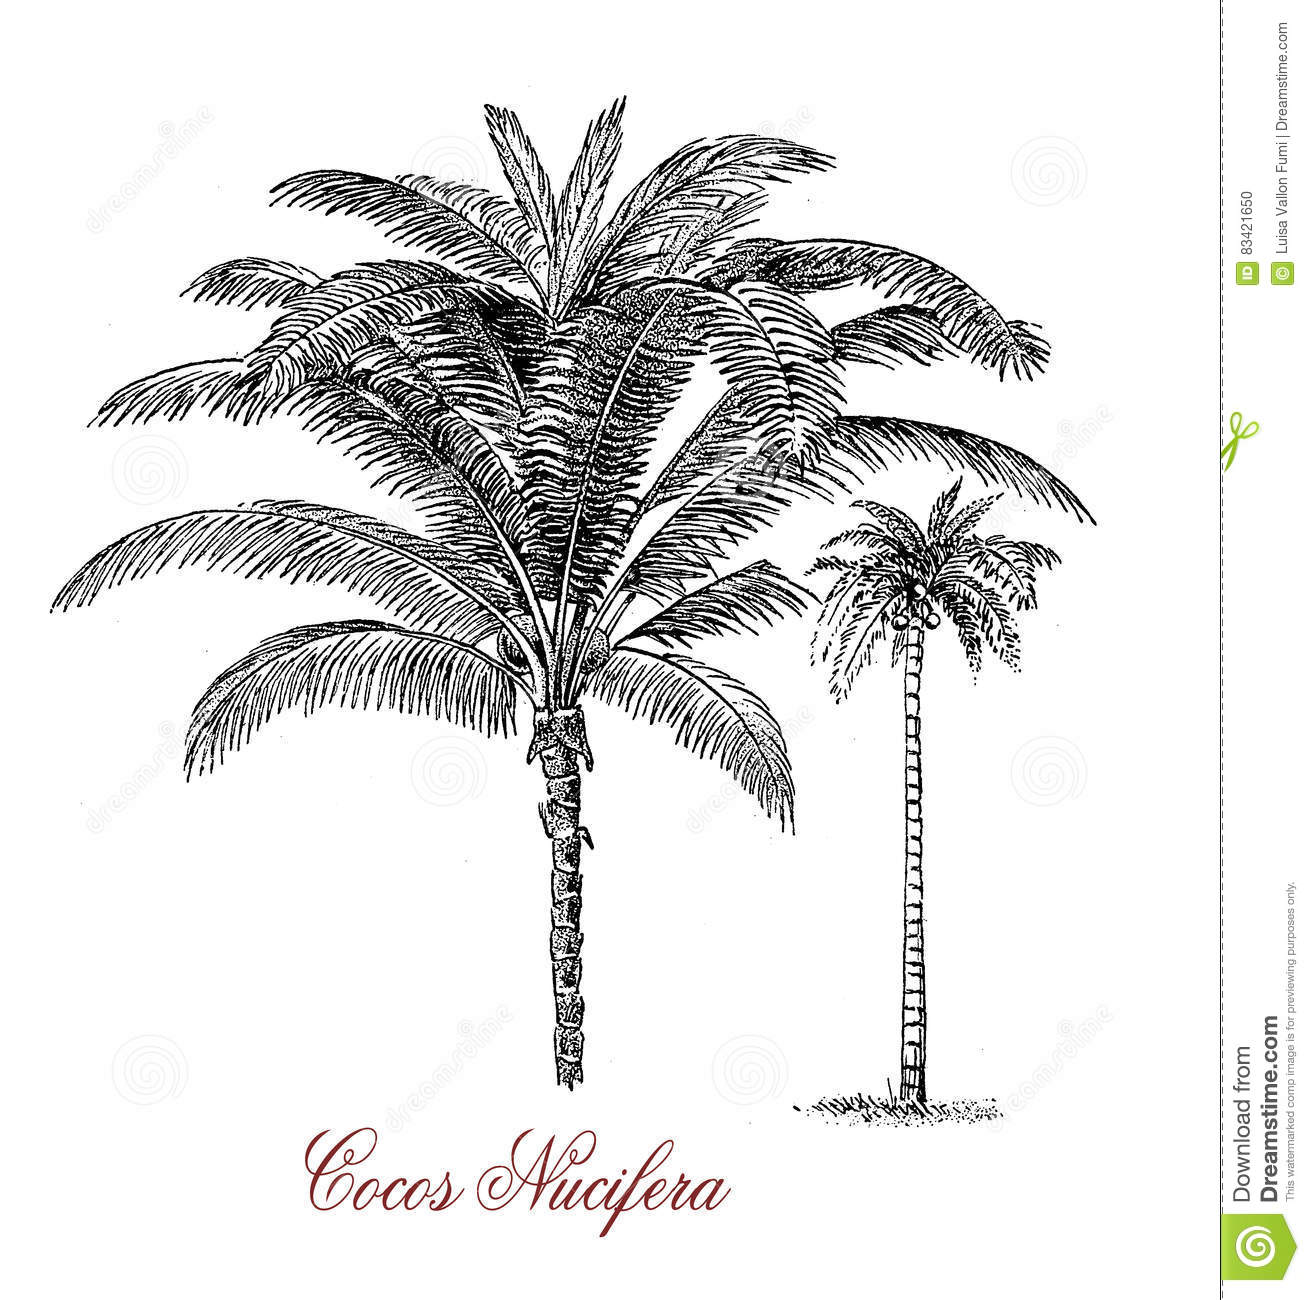 Coconut Tree Botanical Vintage Engraving Stock